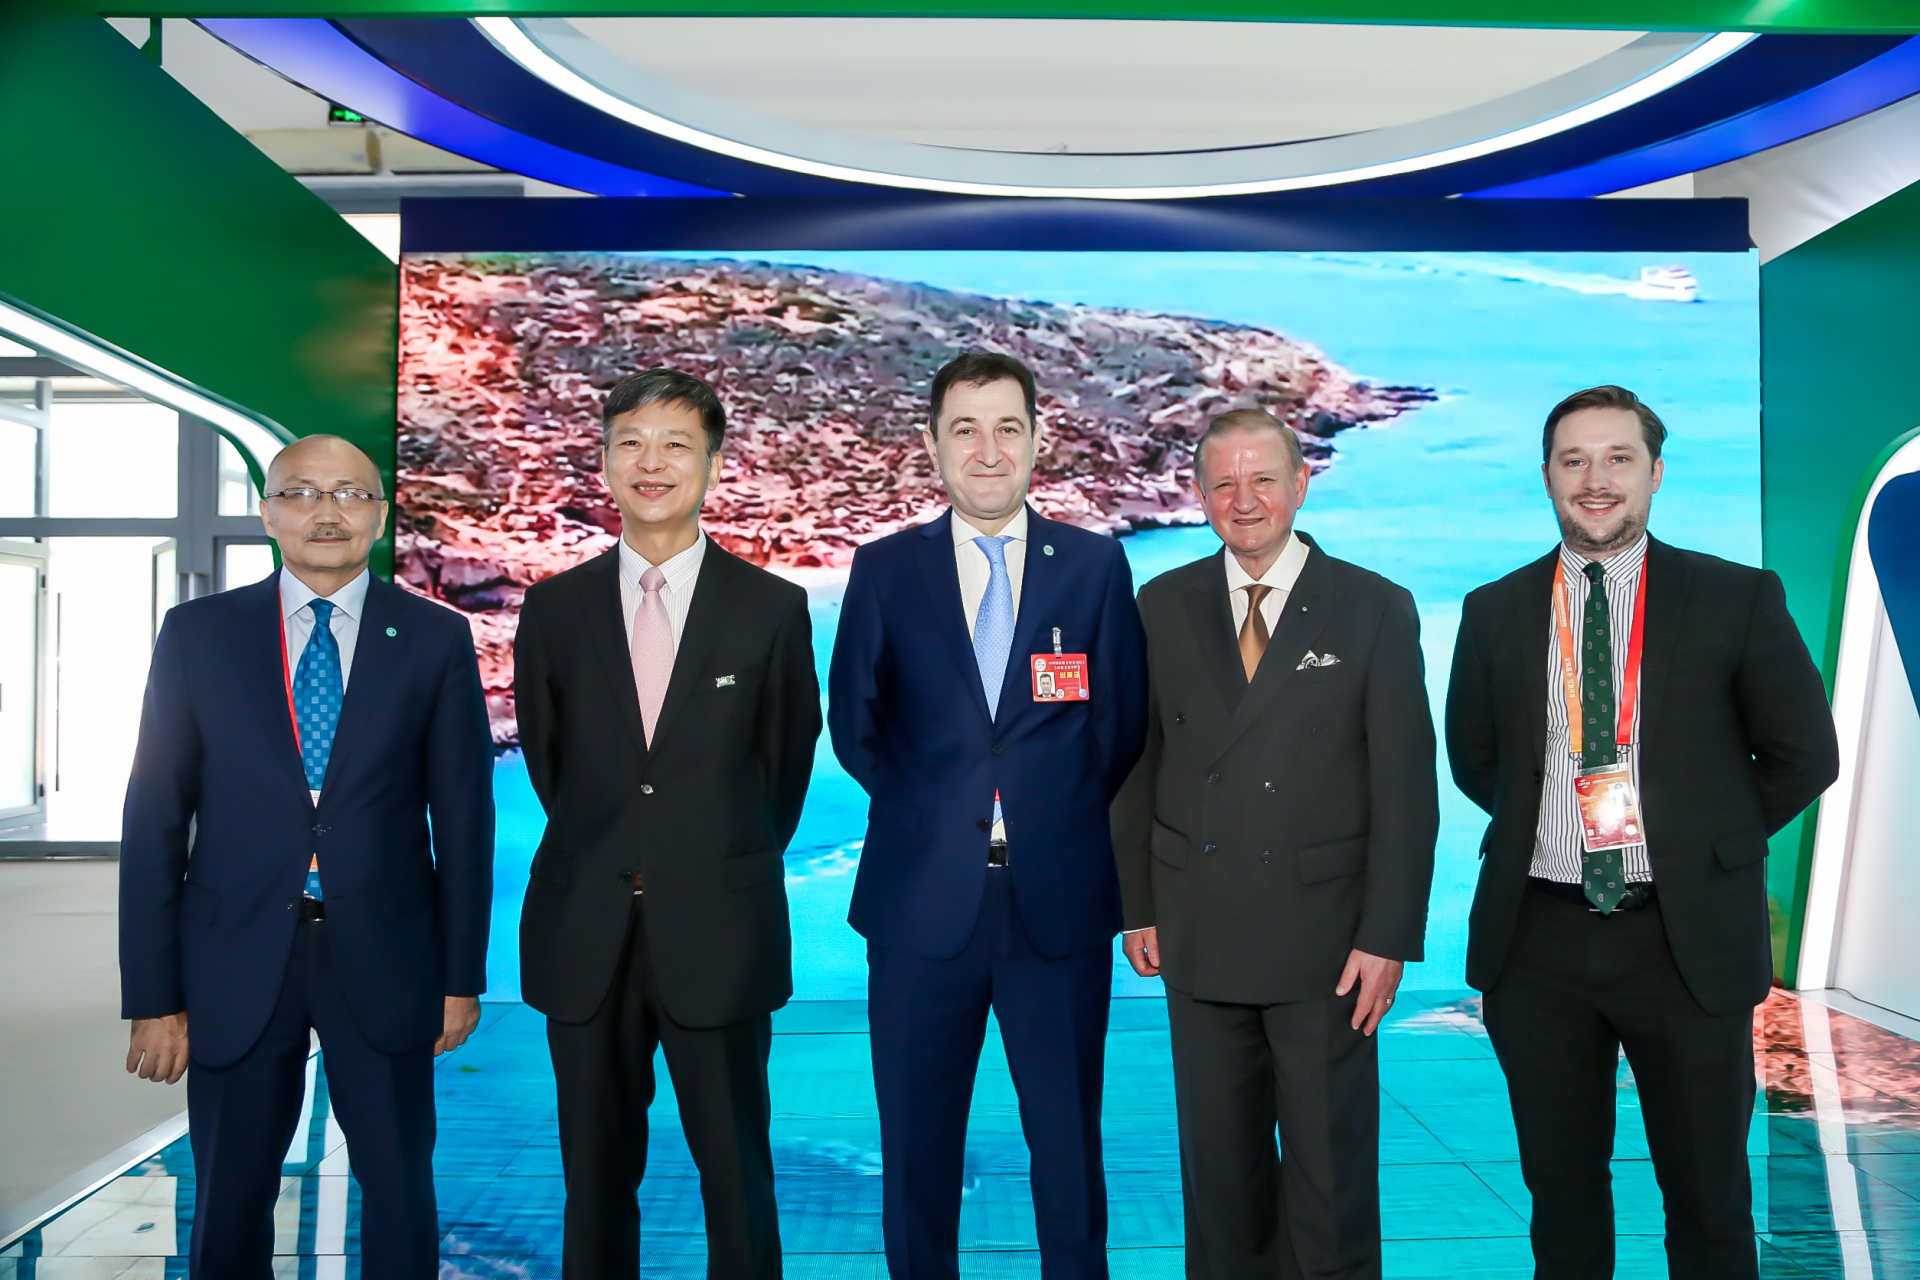 A group photo taken at the booth of WTCF